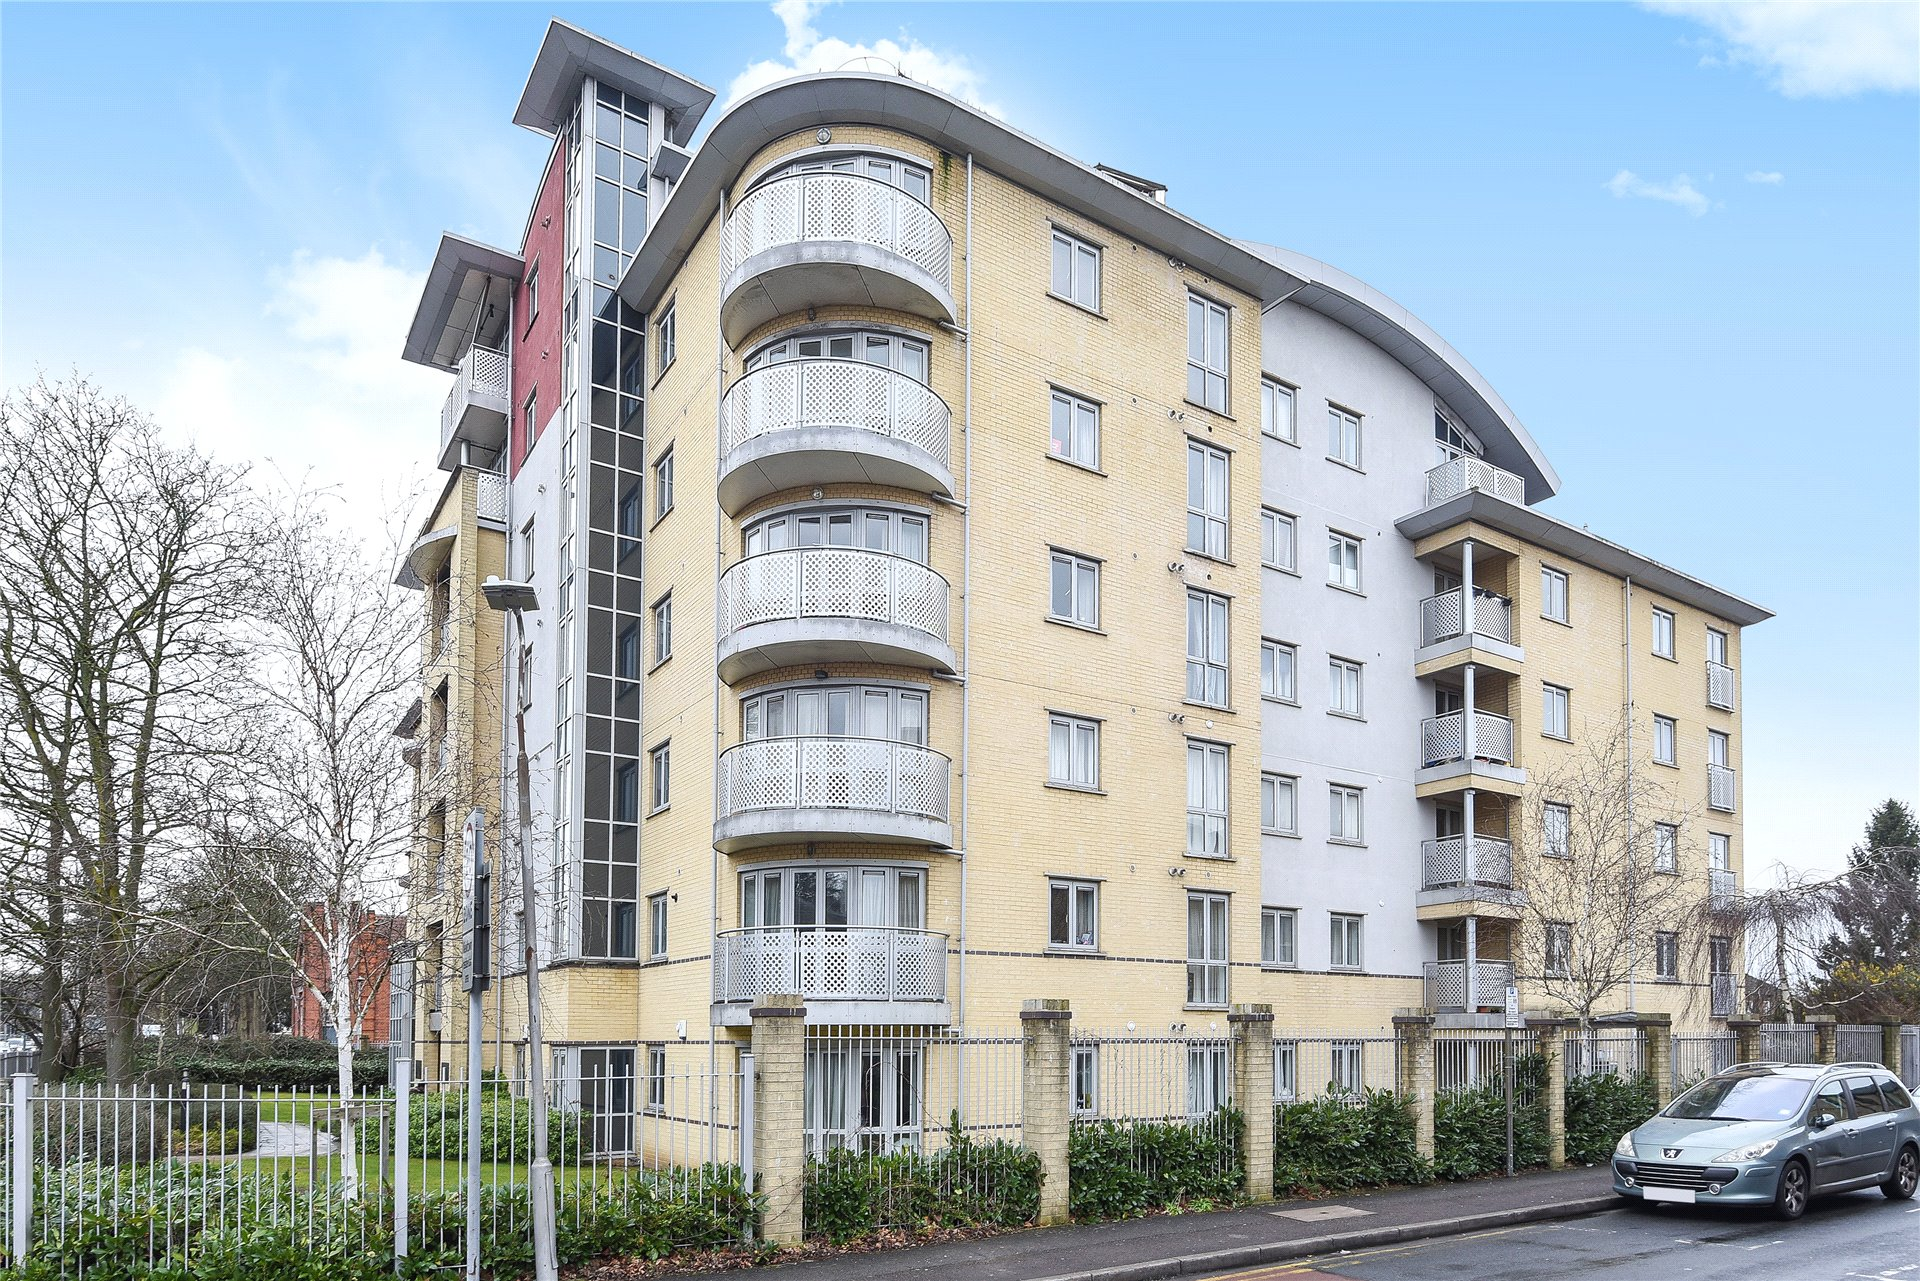 2 Bedrooms Apartment Flat for sale in The Pinnacle, Kings Road, Reading, Berkshire, RG1